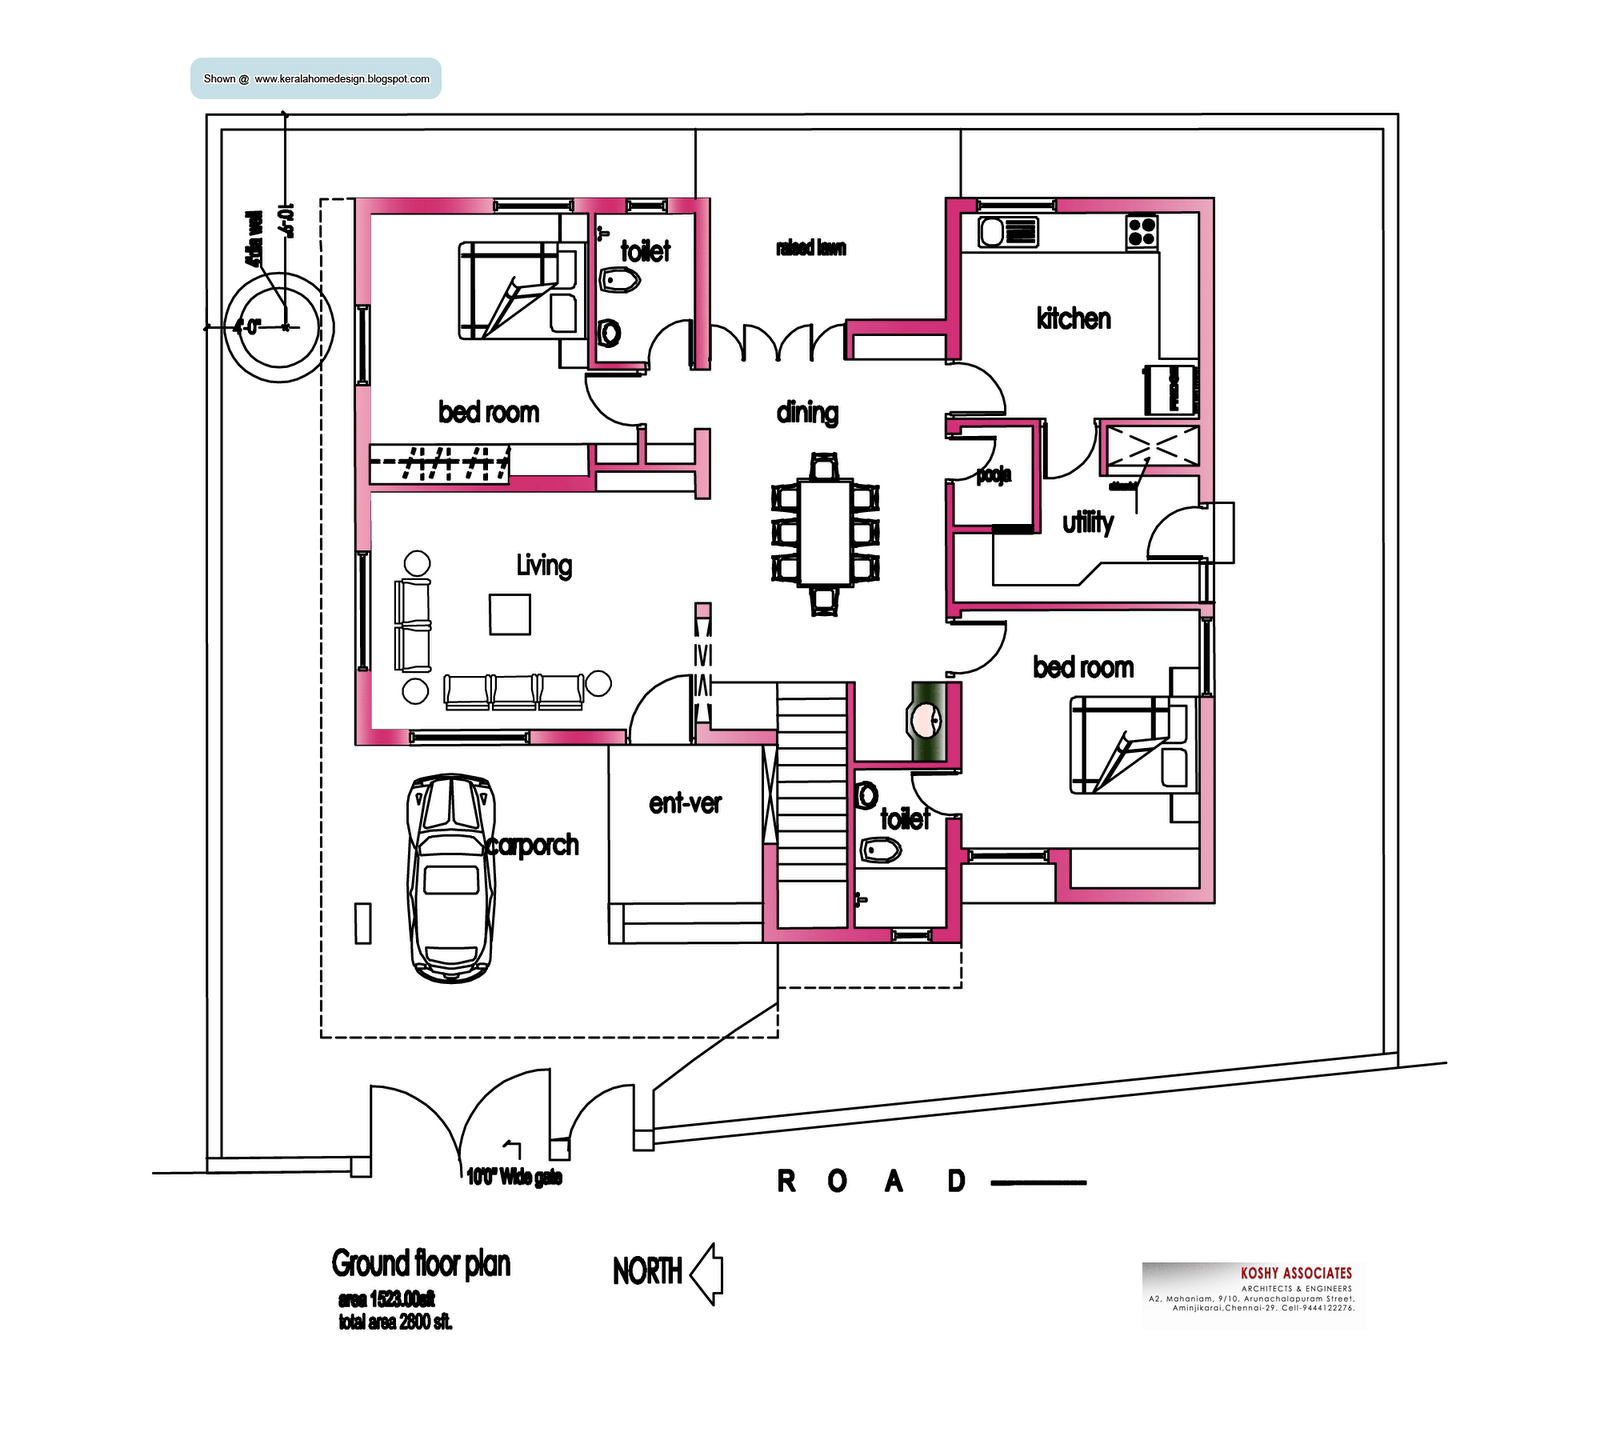 Image detail for modern house plan 2800 sq ft kerala for Design own house plan